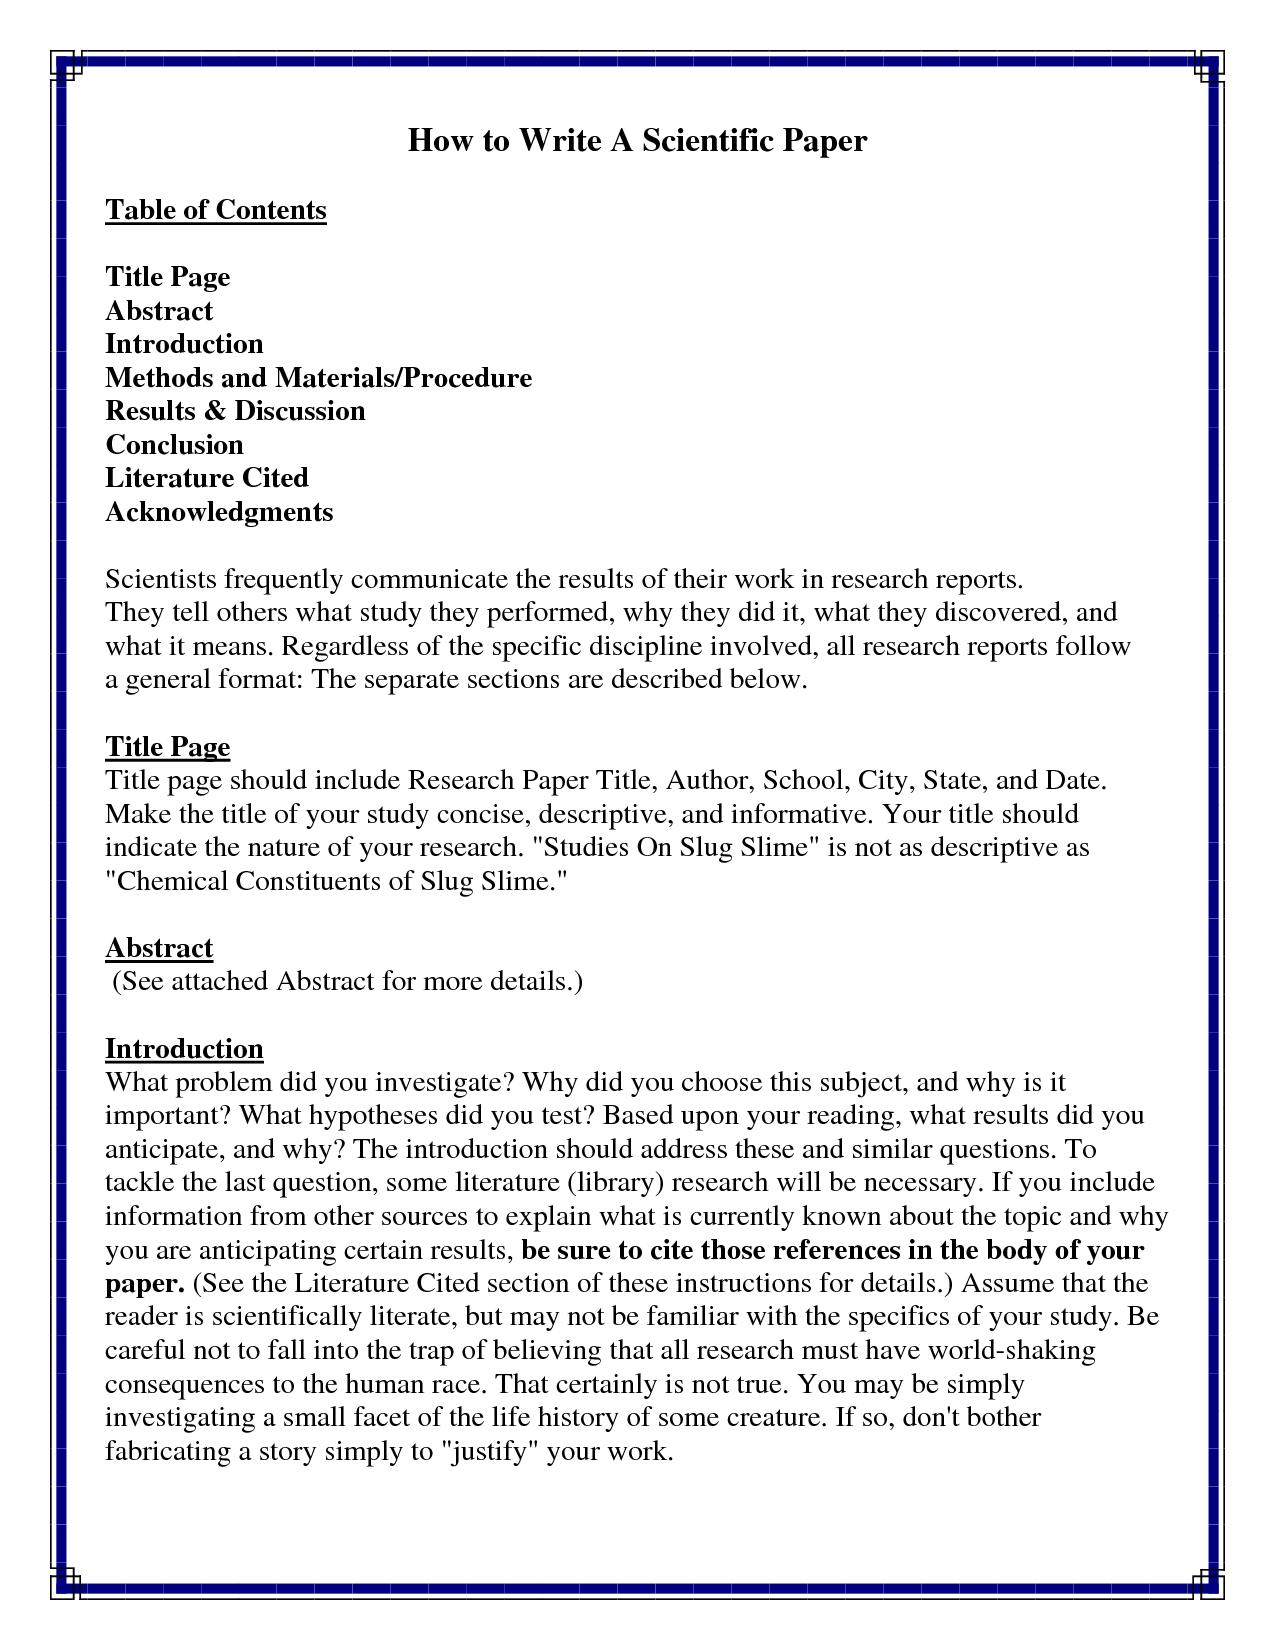 002 Essay Example How To Write Research Huidbfbtx Paper Excellent A Proposal In Apa Format Mla Full